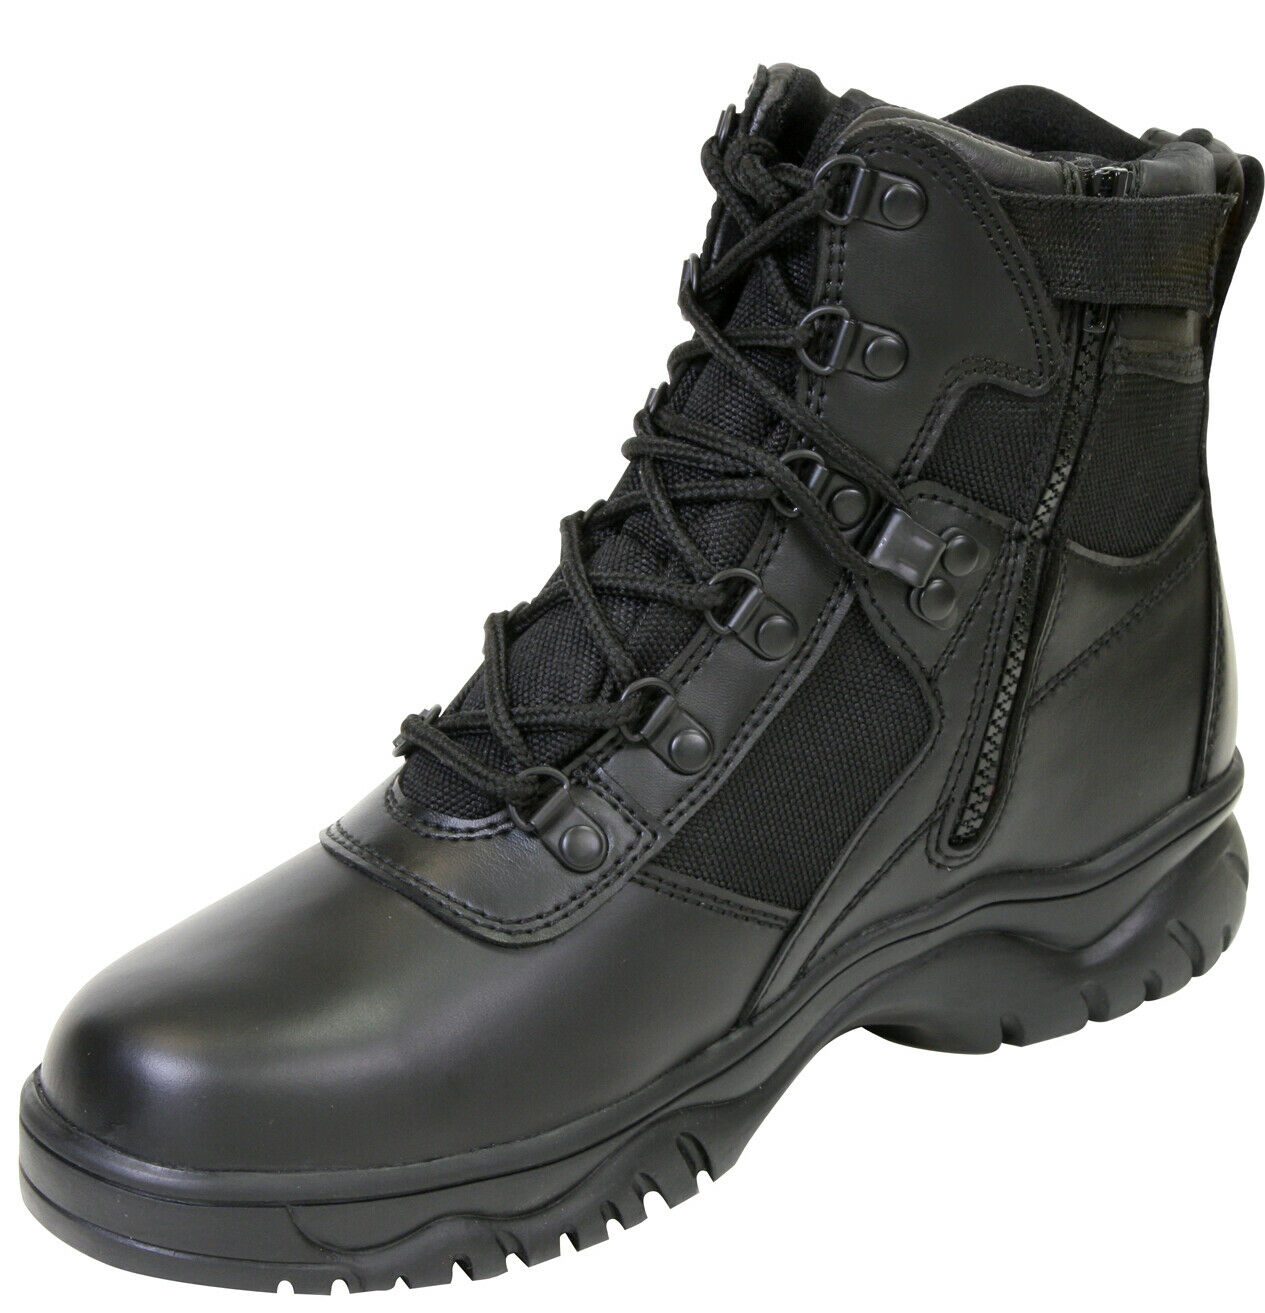 Military style blood pathogen tactical boots side zipper waterproof redhco 5190